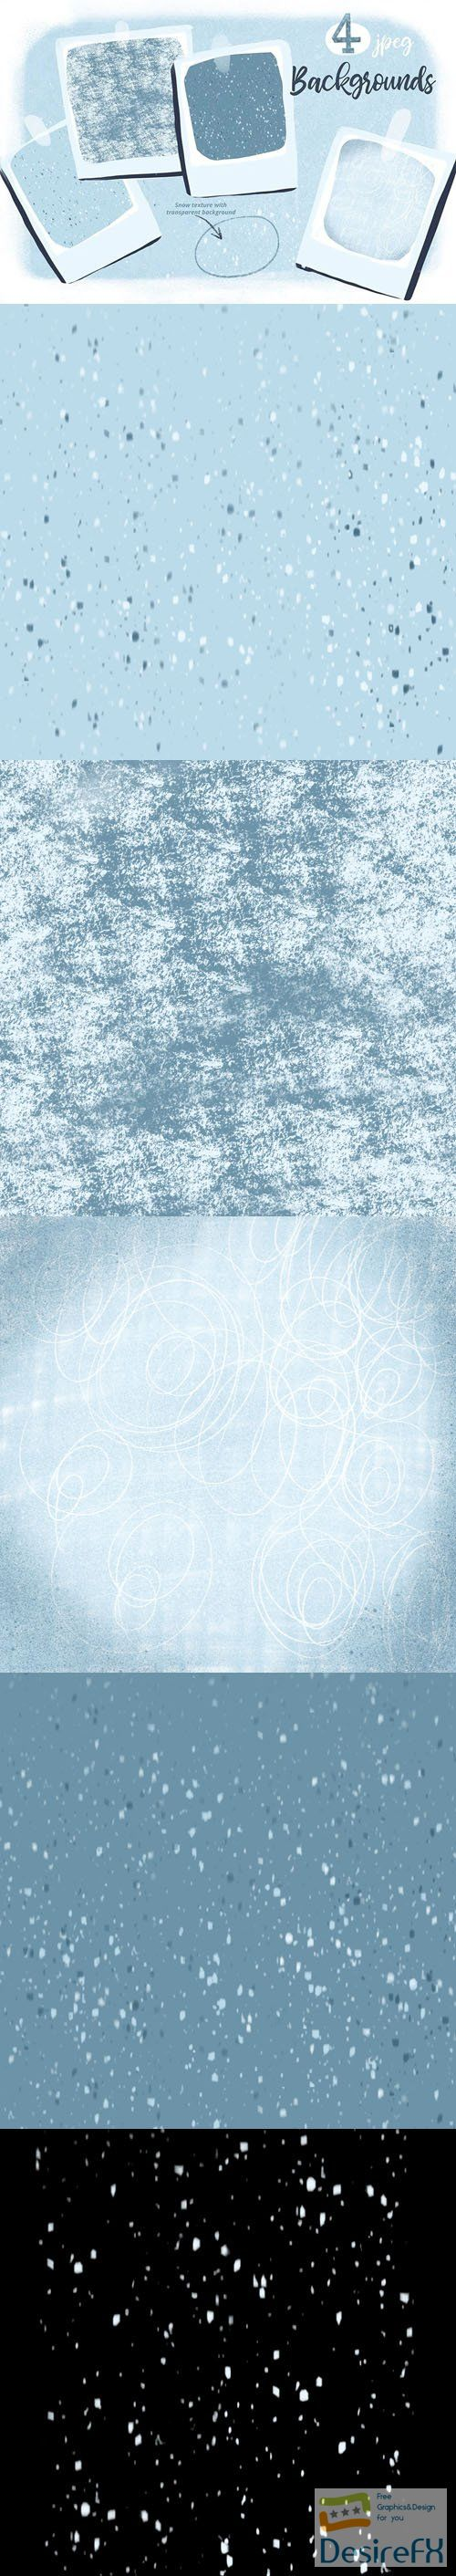 5 Snow Textures Backgrounds Set